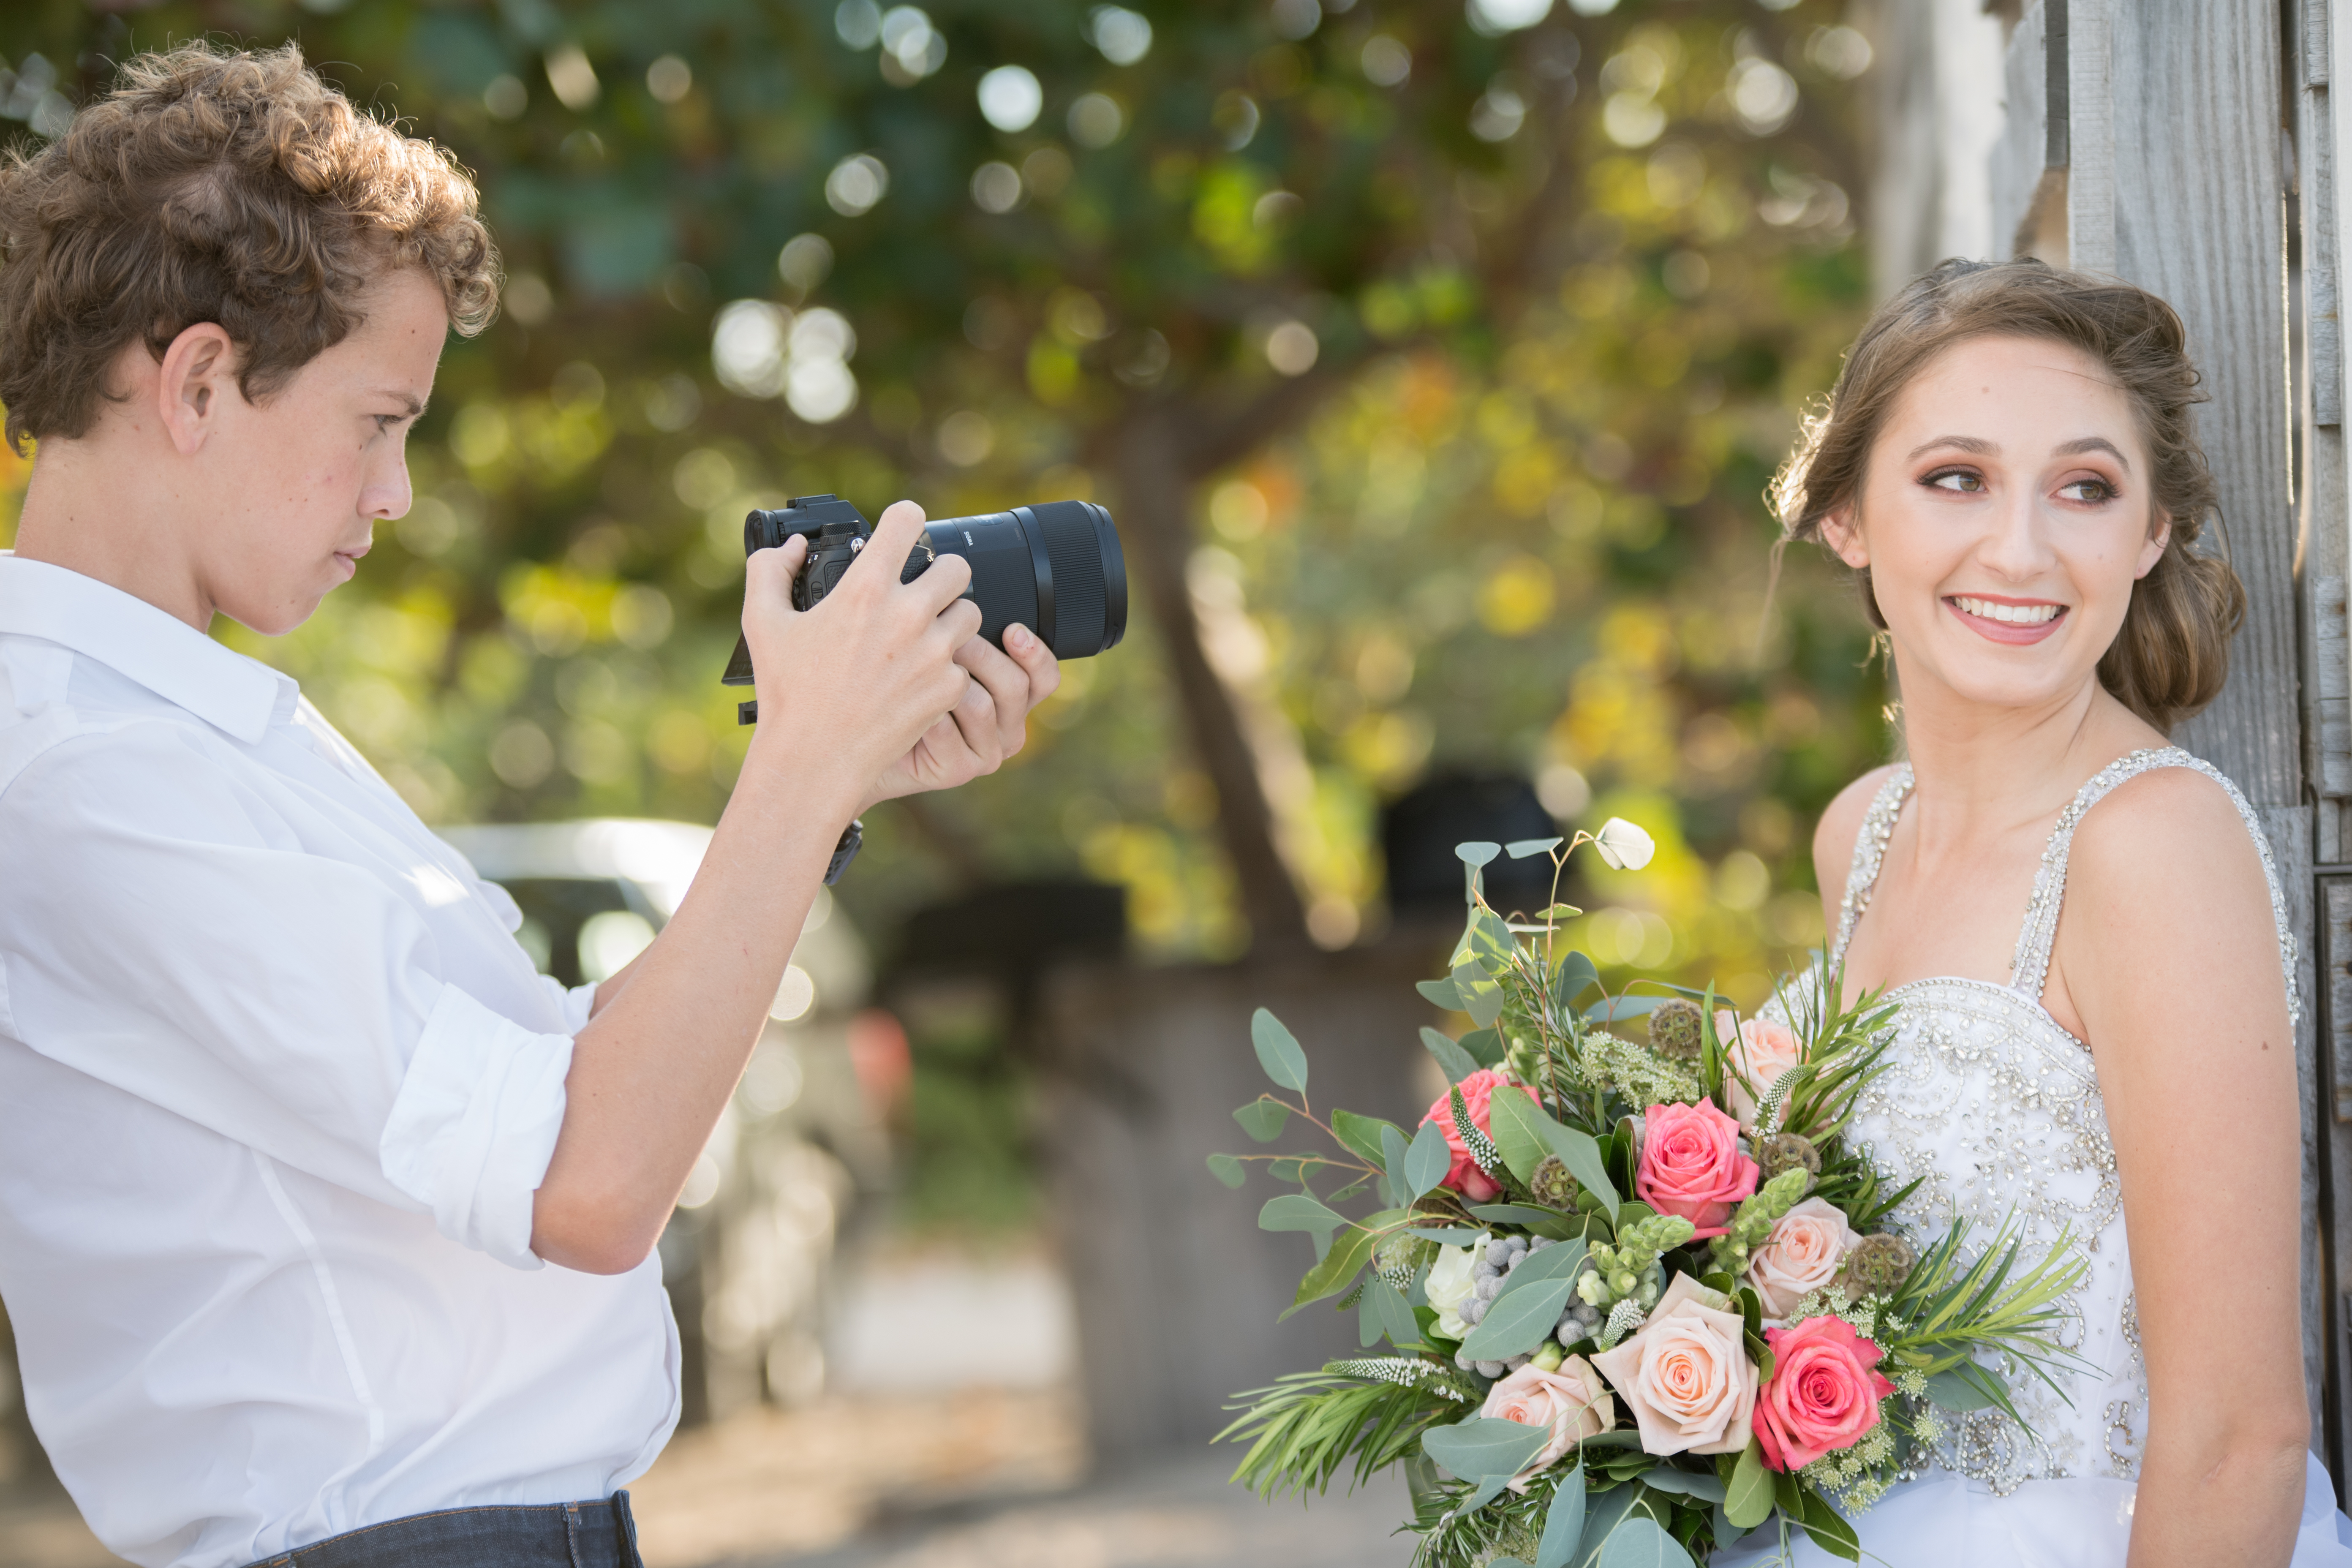 Photographing The Beautiful Bride